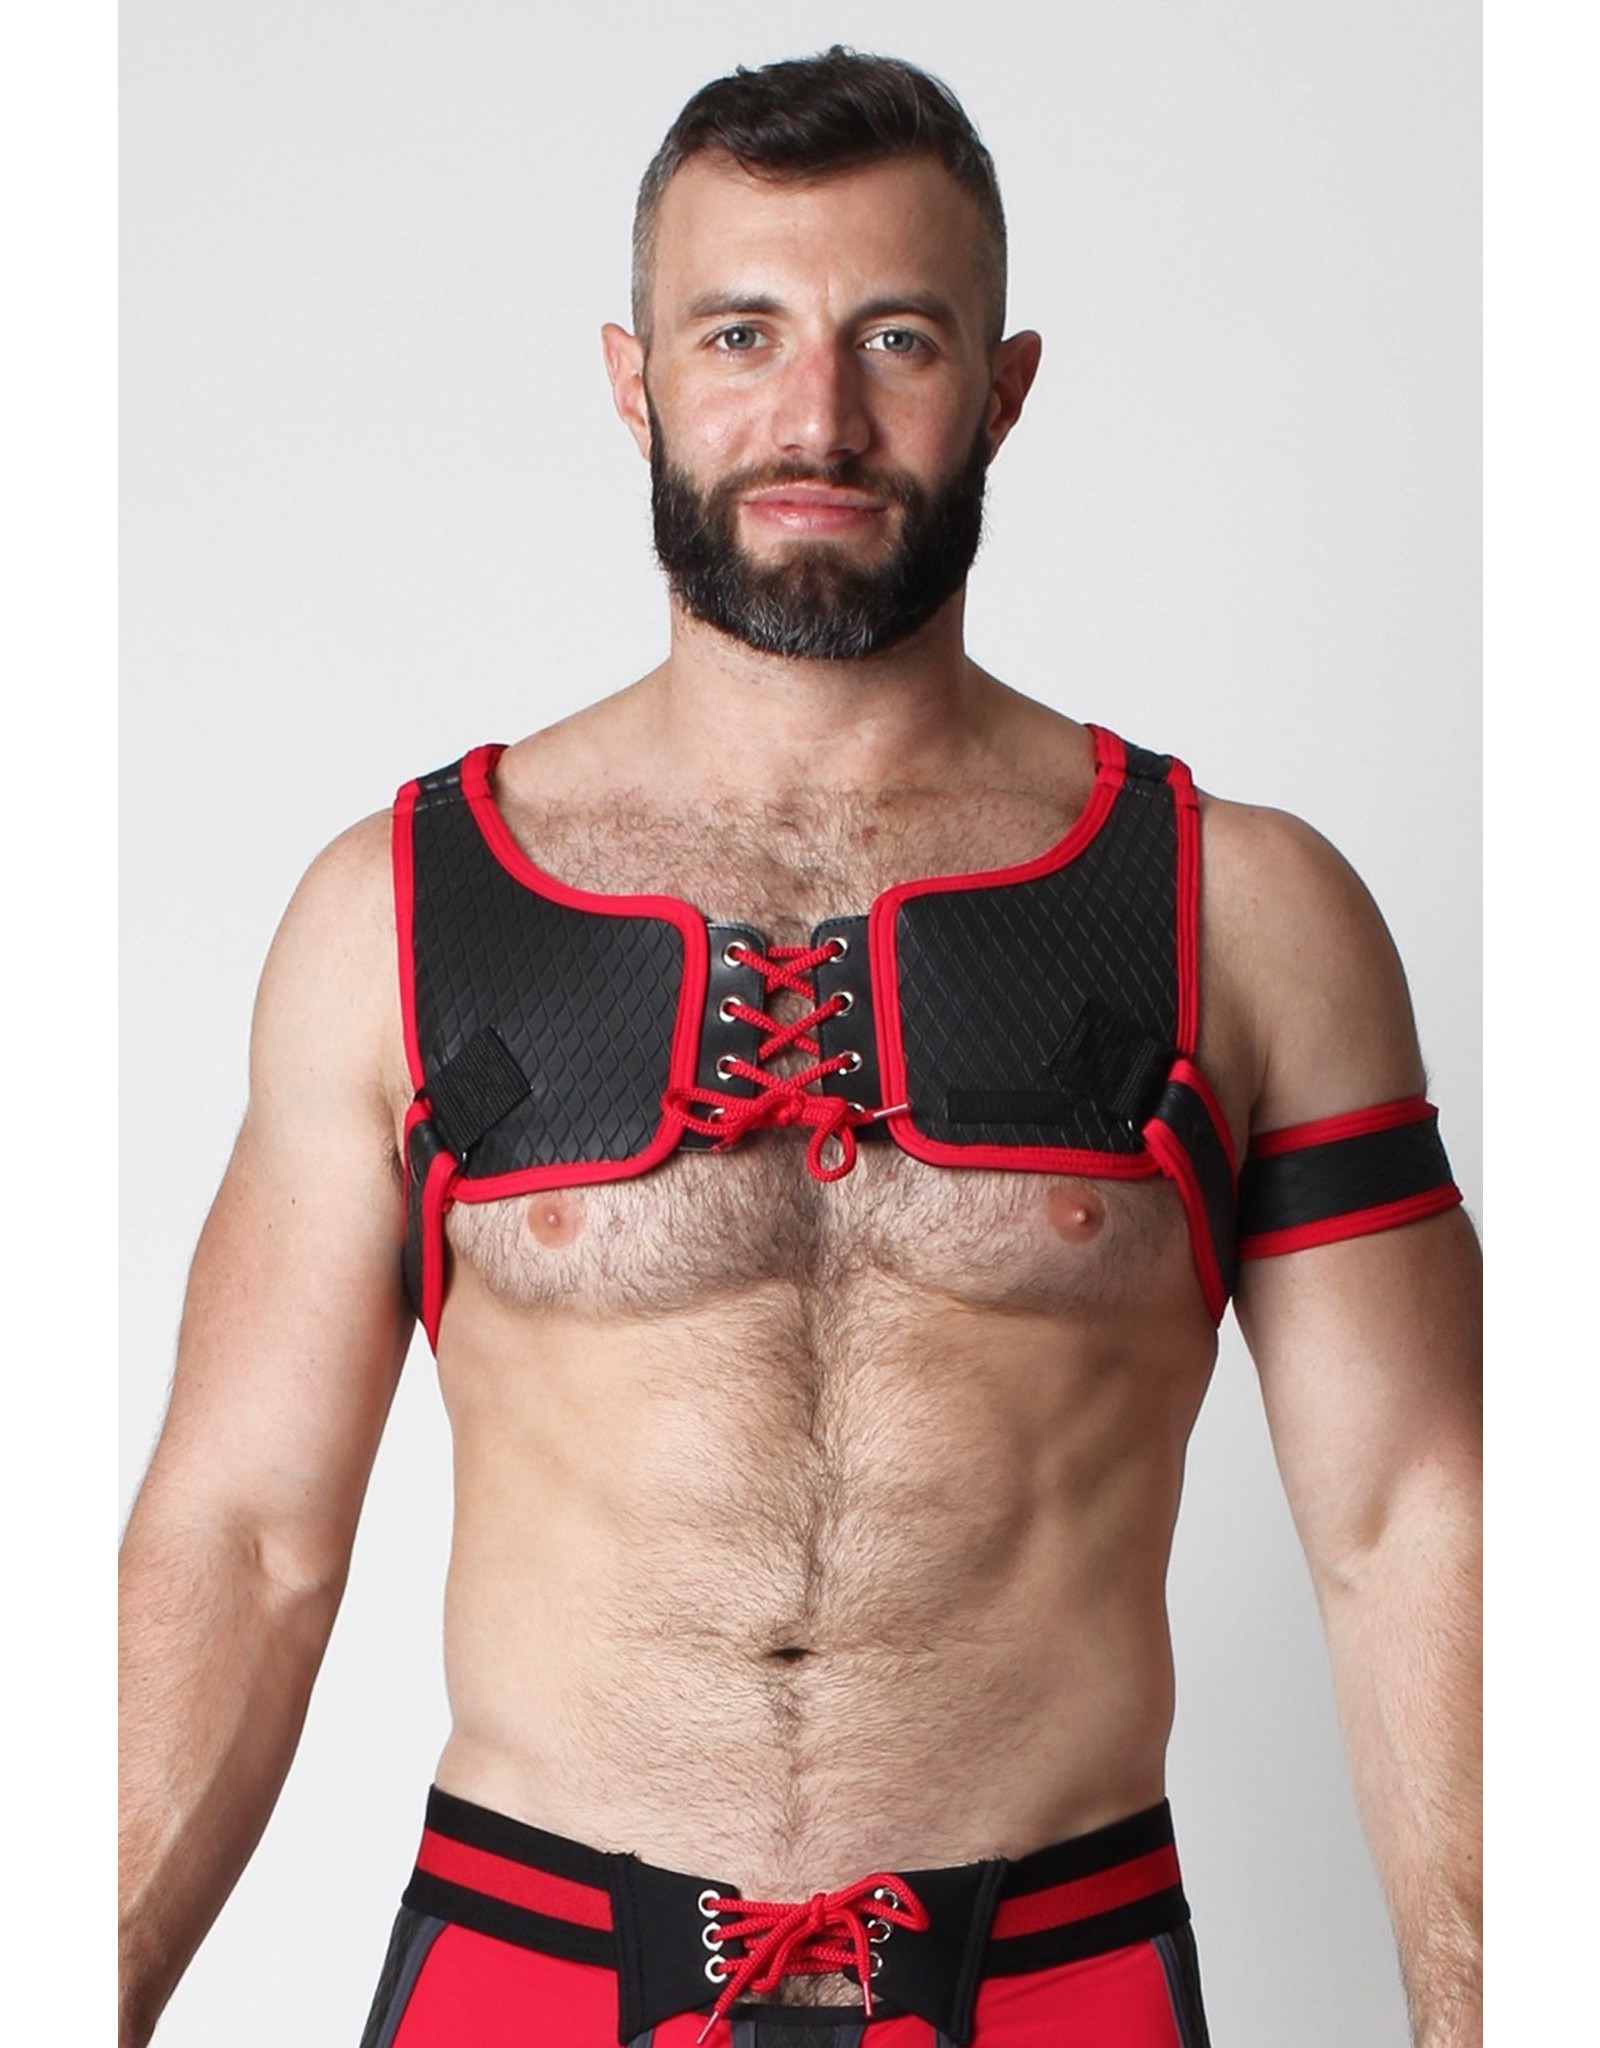 Cellblock13 Cellblock13 Gridiron Harness